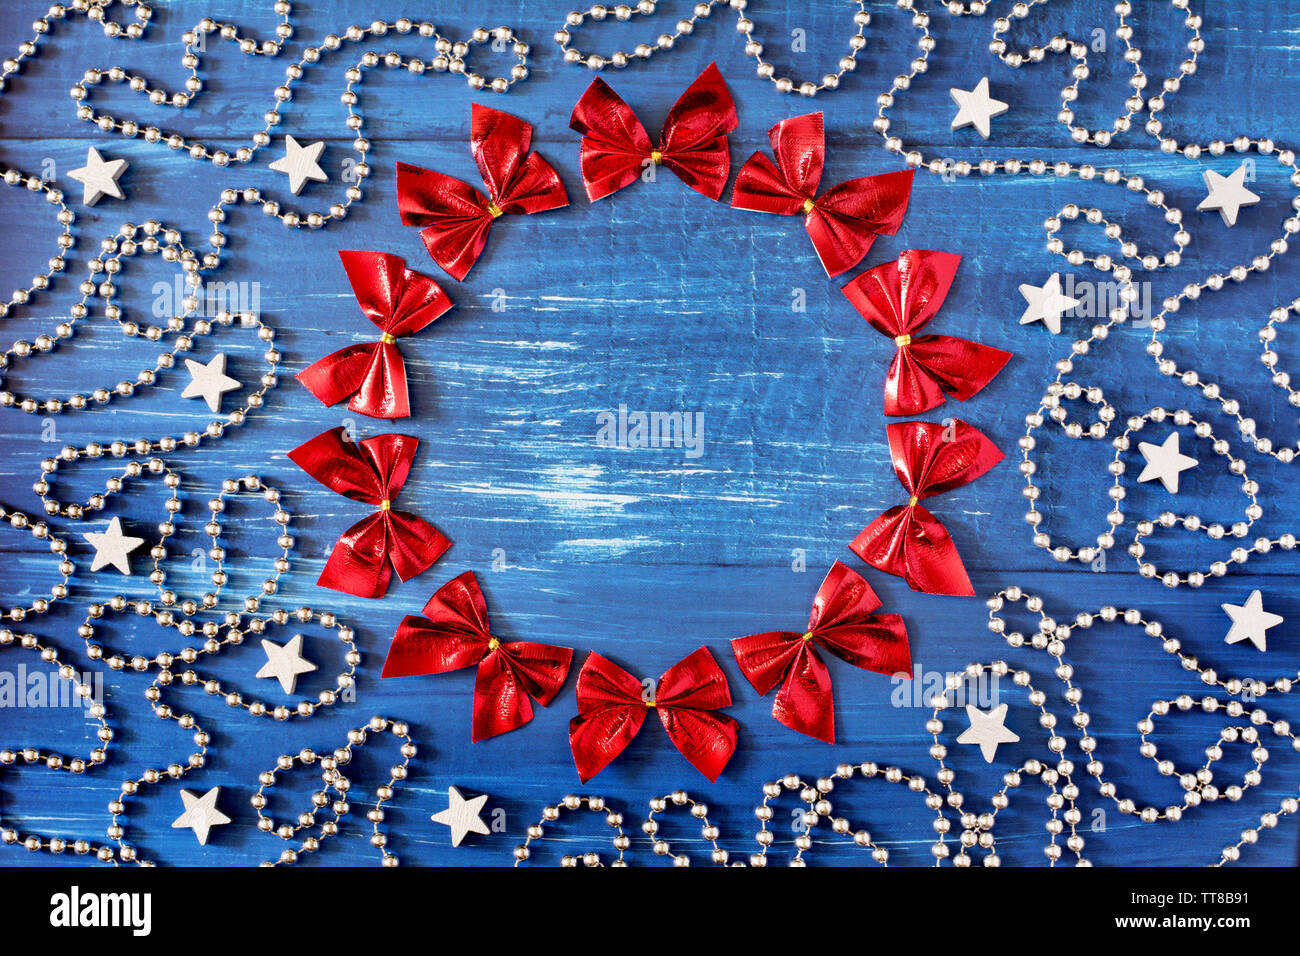 Christmas Chain Text.Christmas Decoration With A Cirle Of Red Ribbons Silver